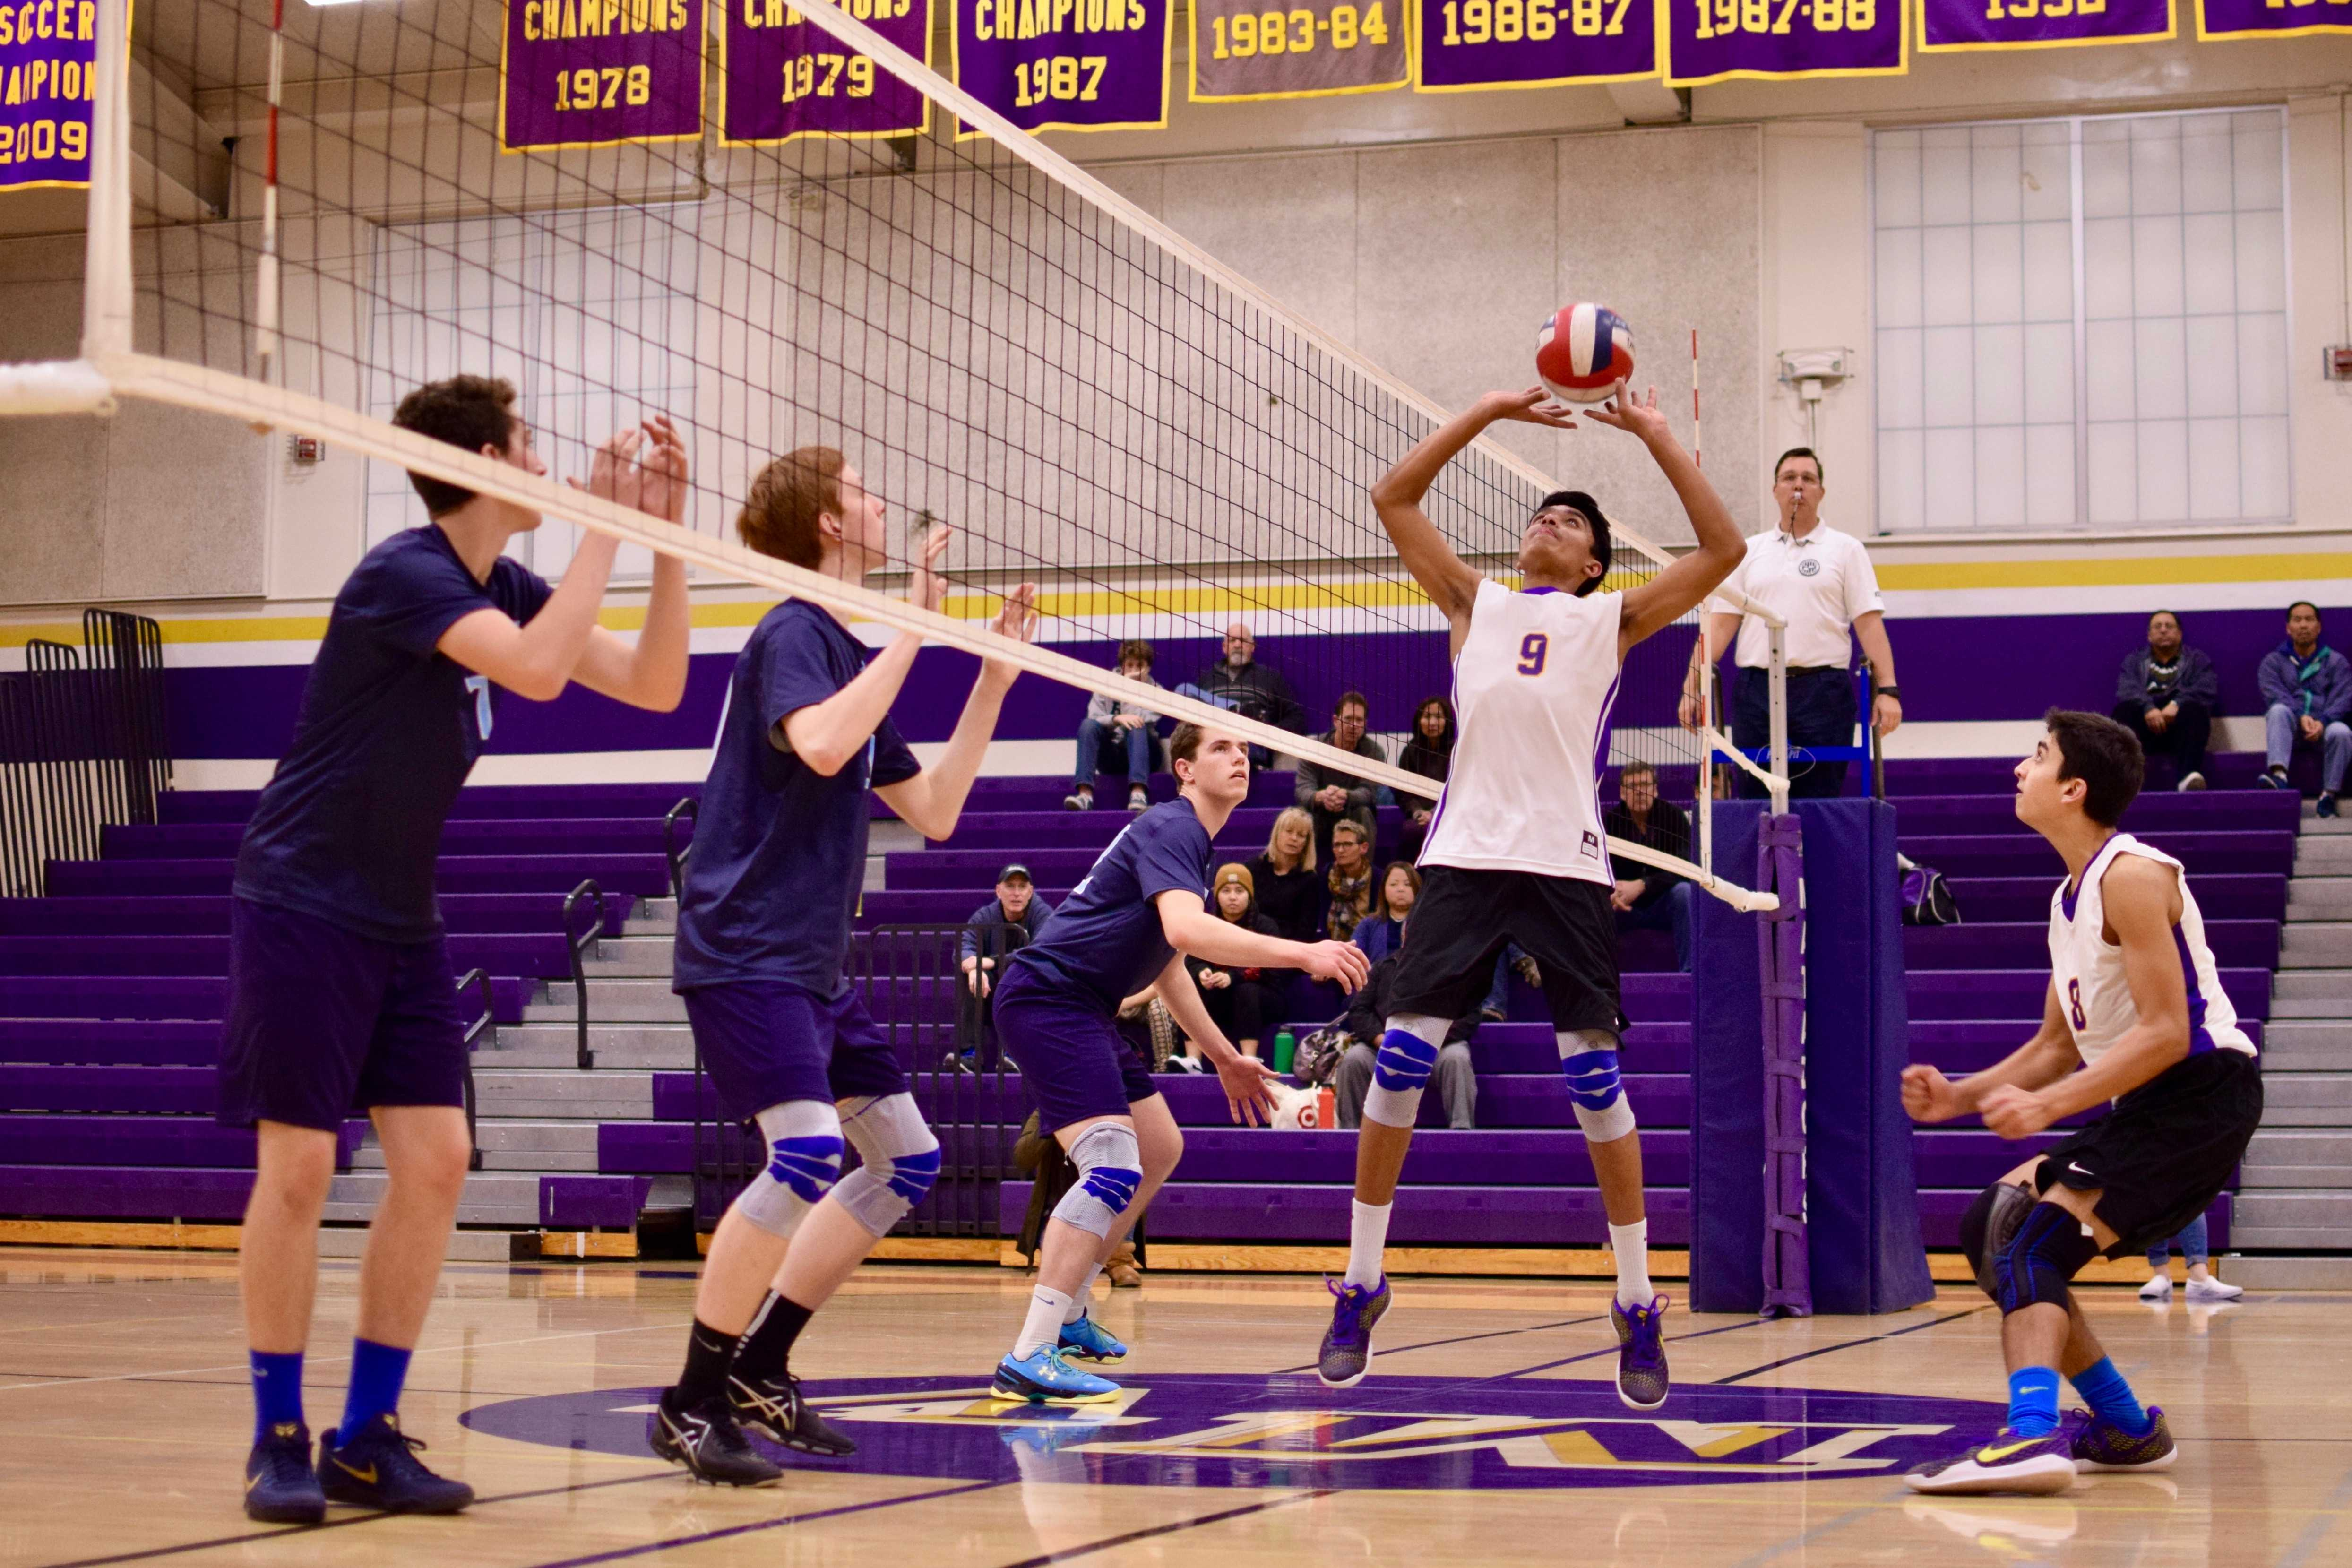 PHOTOS- Boys vball vs Bellarmine - 7